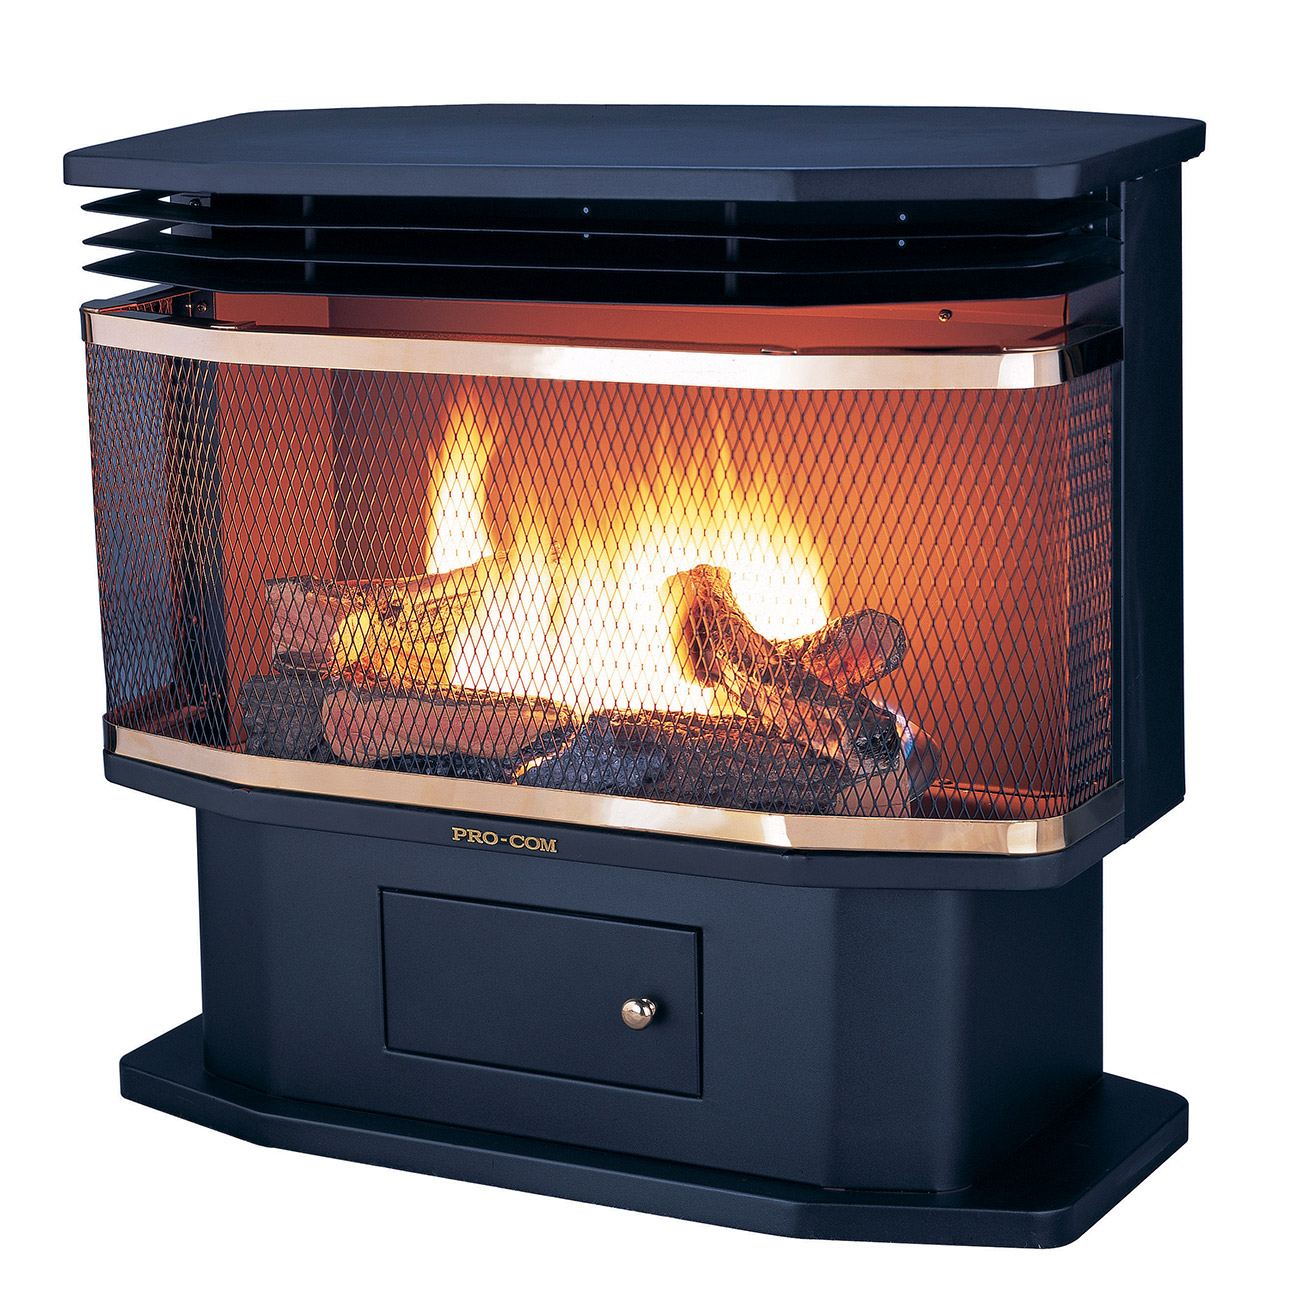 Ventless pedestal gas stove model sn400tyla series for Best propane heating systems